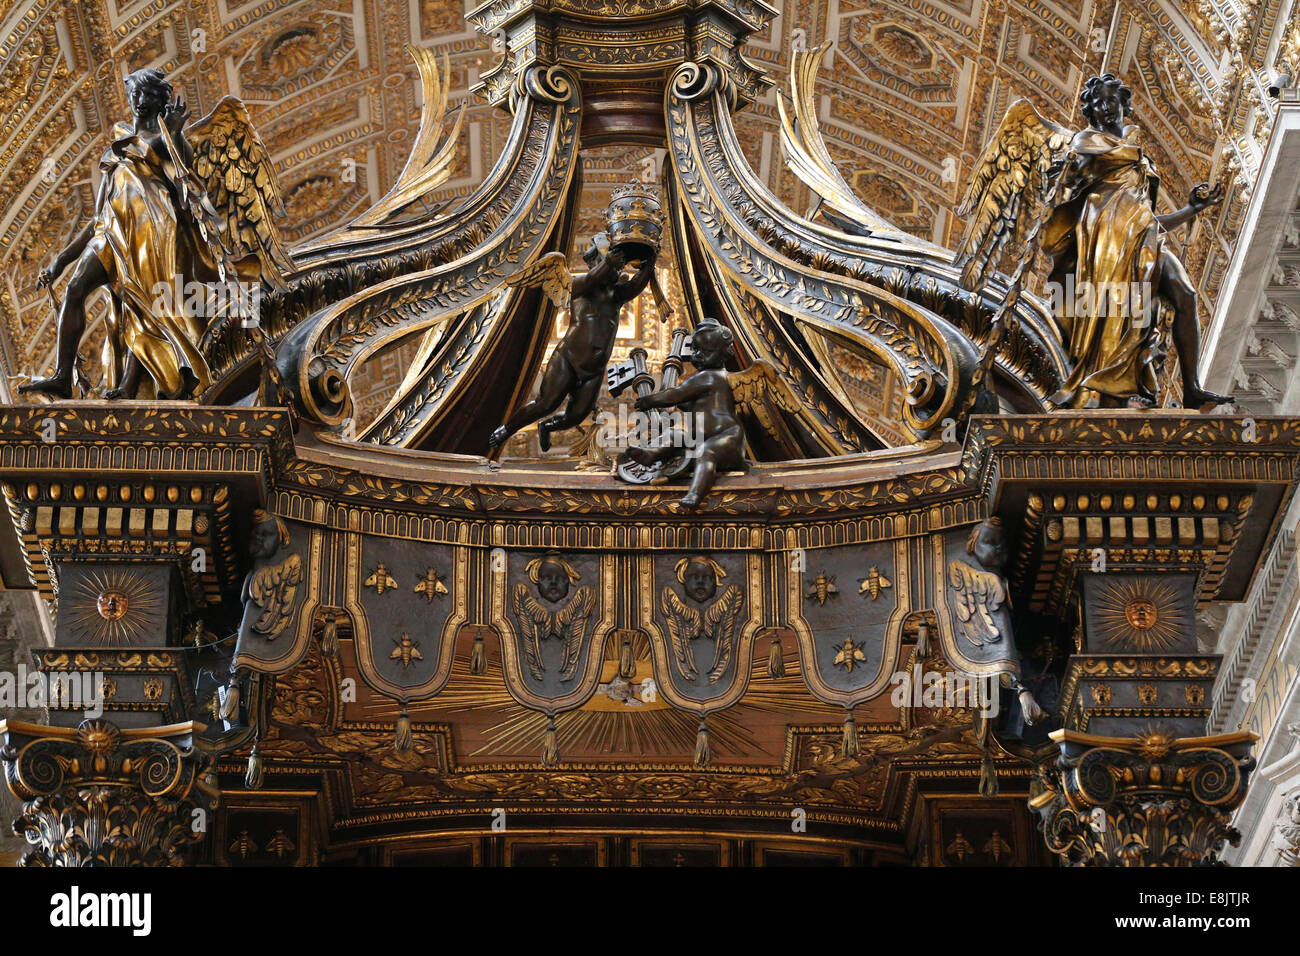 The Altar Of The Chair Of Saint Peter Baldacchino